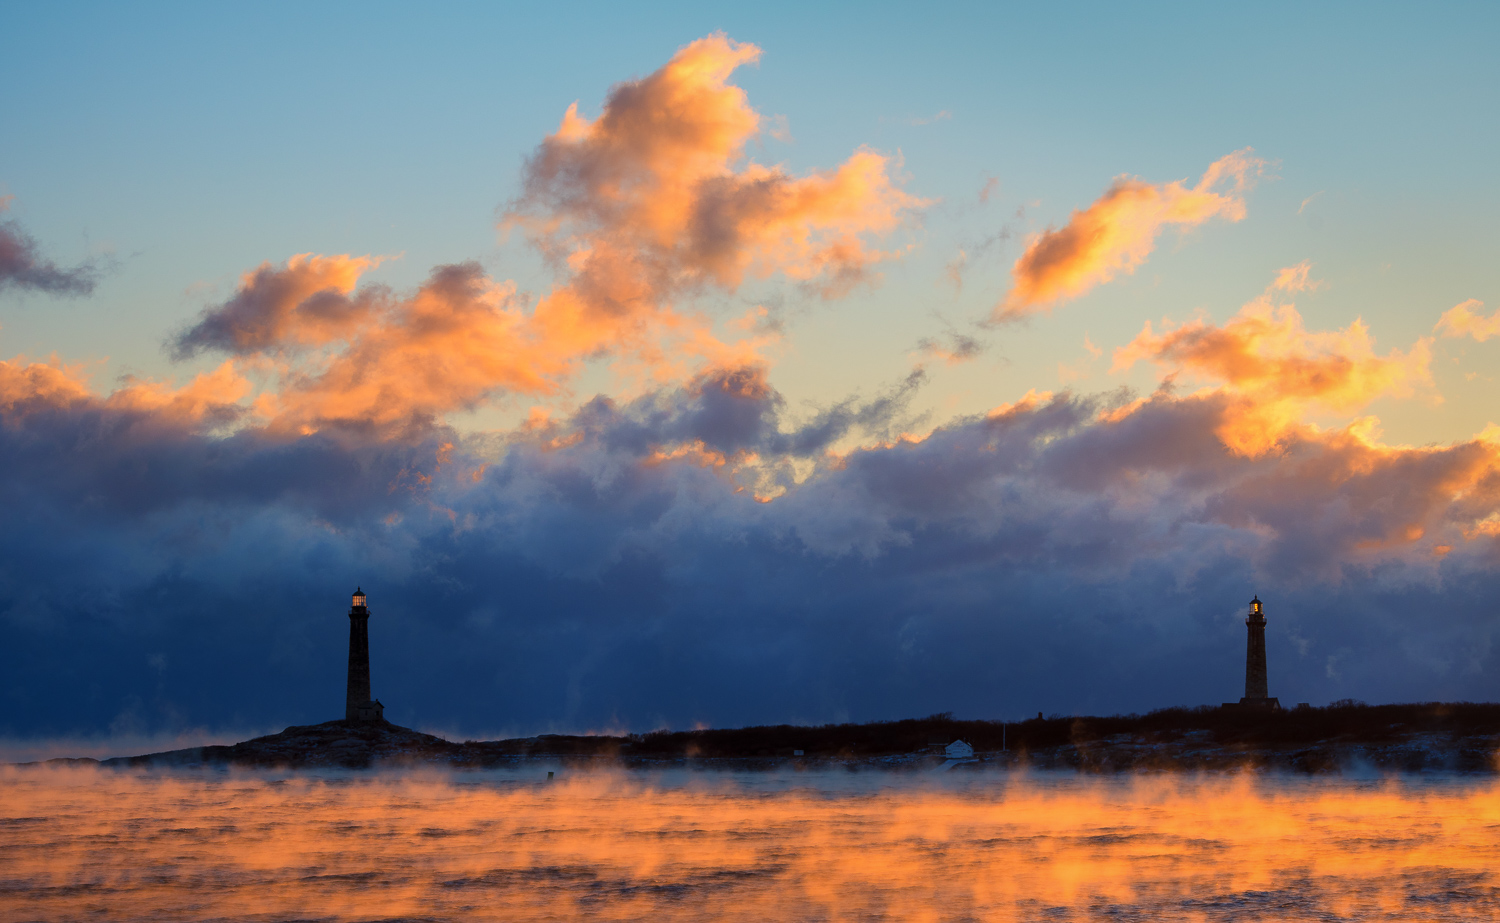 Nikon D500, 1/125 @ f/10, ISO 100, 70-200mm  Thacher Island Lighthouses